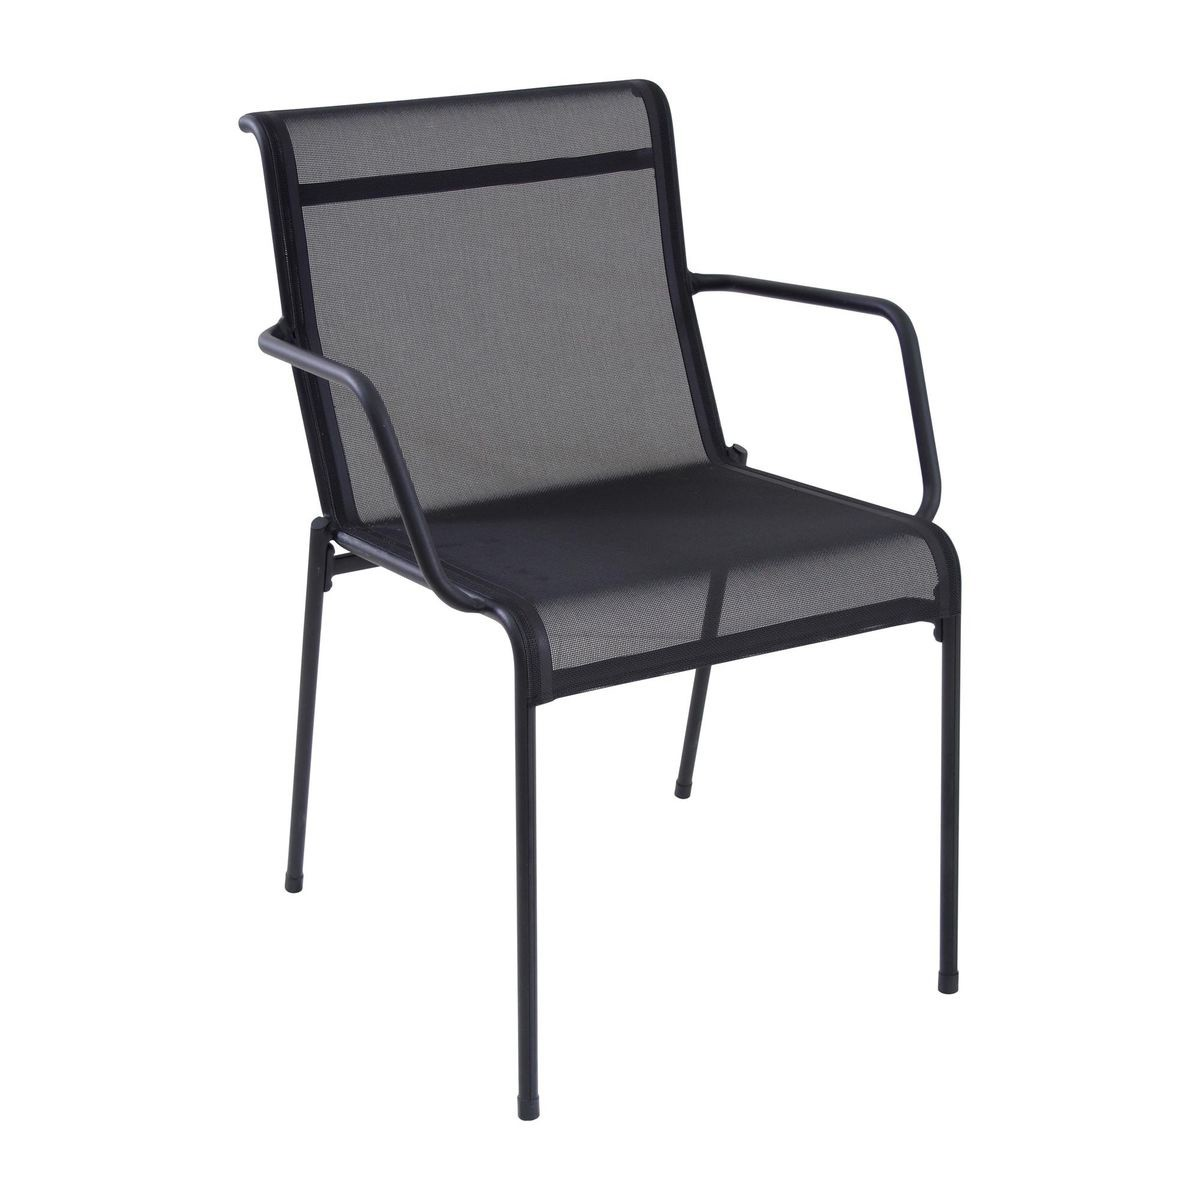 Kira Armchair 684 from Emu